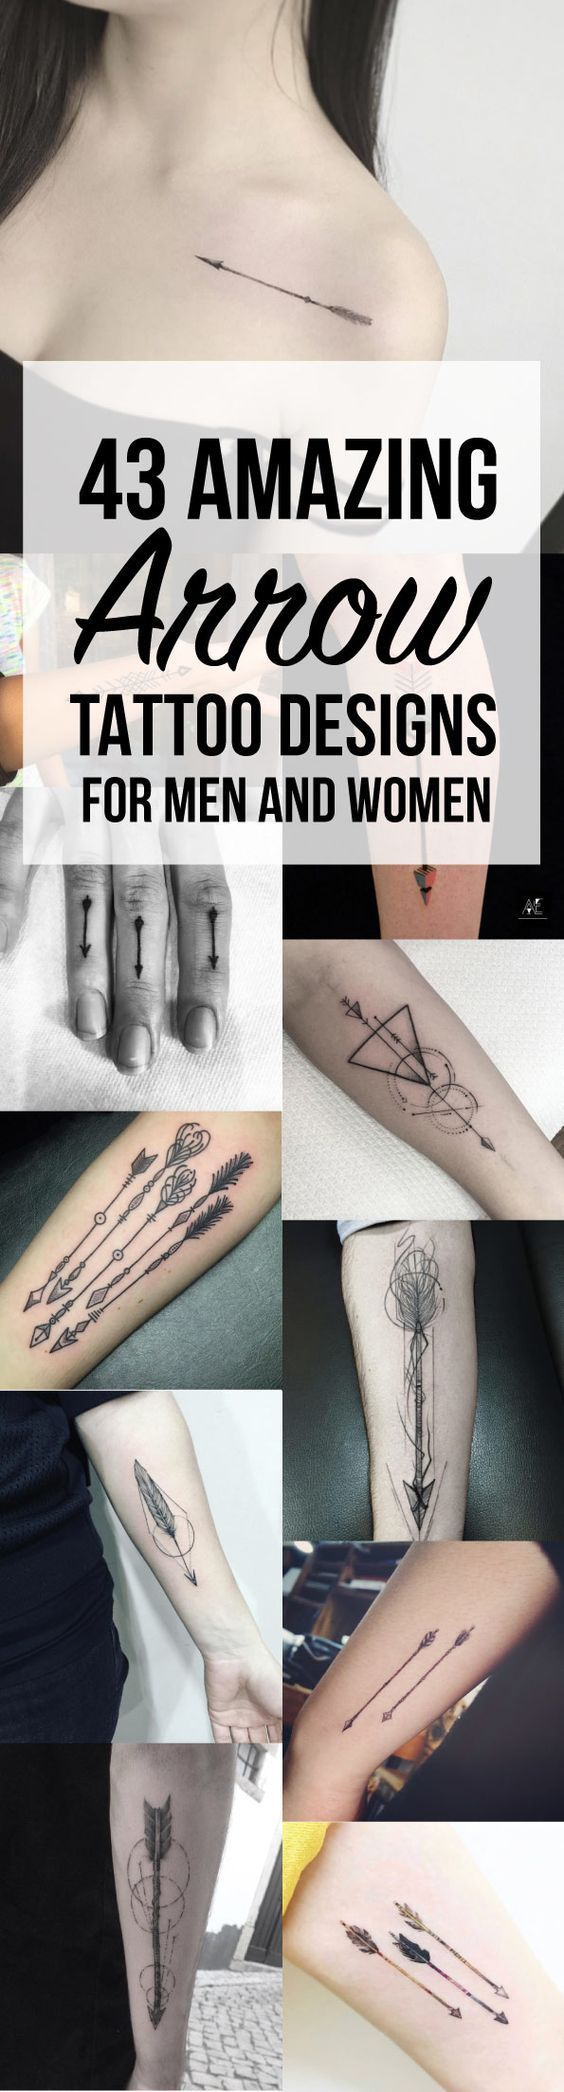 awesome Tattoo Trends - 43 Amazing Arrow Tattoo Designs for Men and Women...